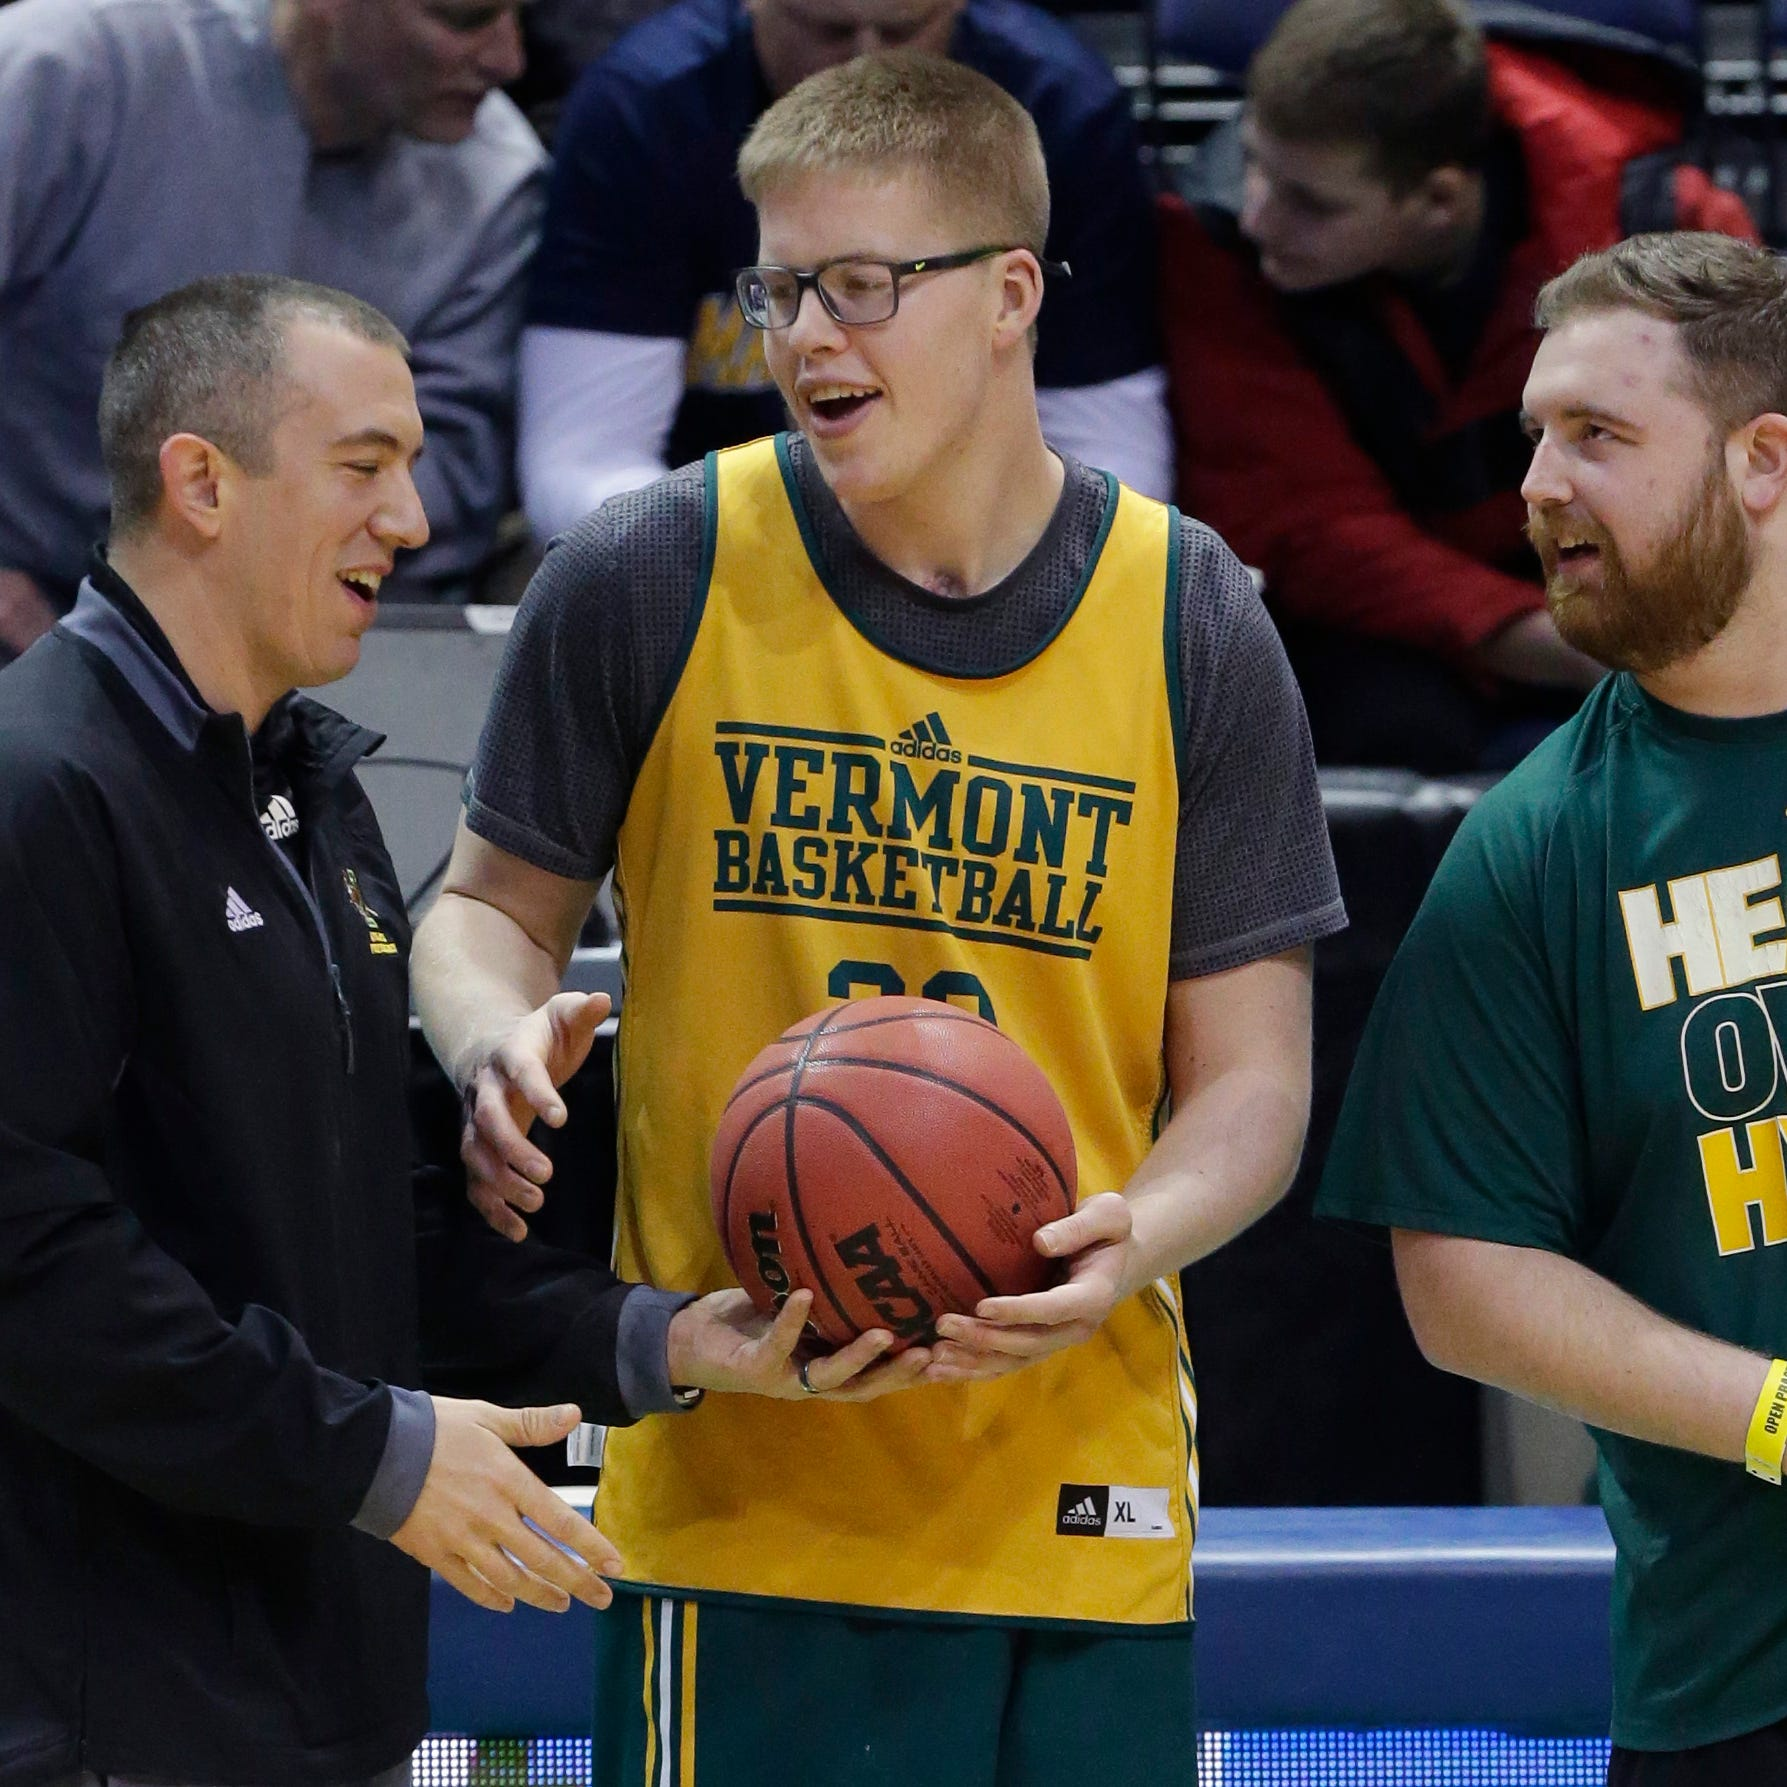 Doyel: Whether he ever plays again, Vermont's Josh Speidel is a basketball story